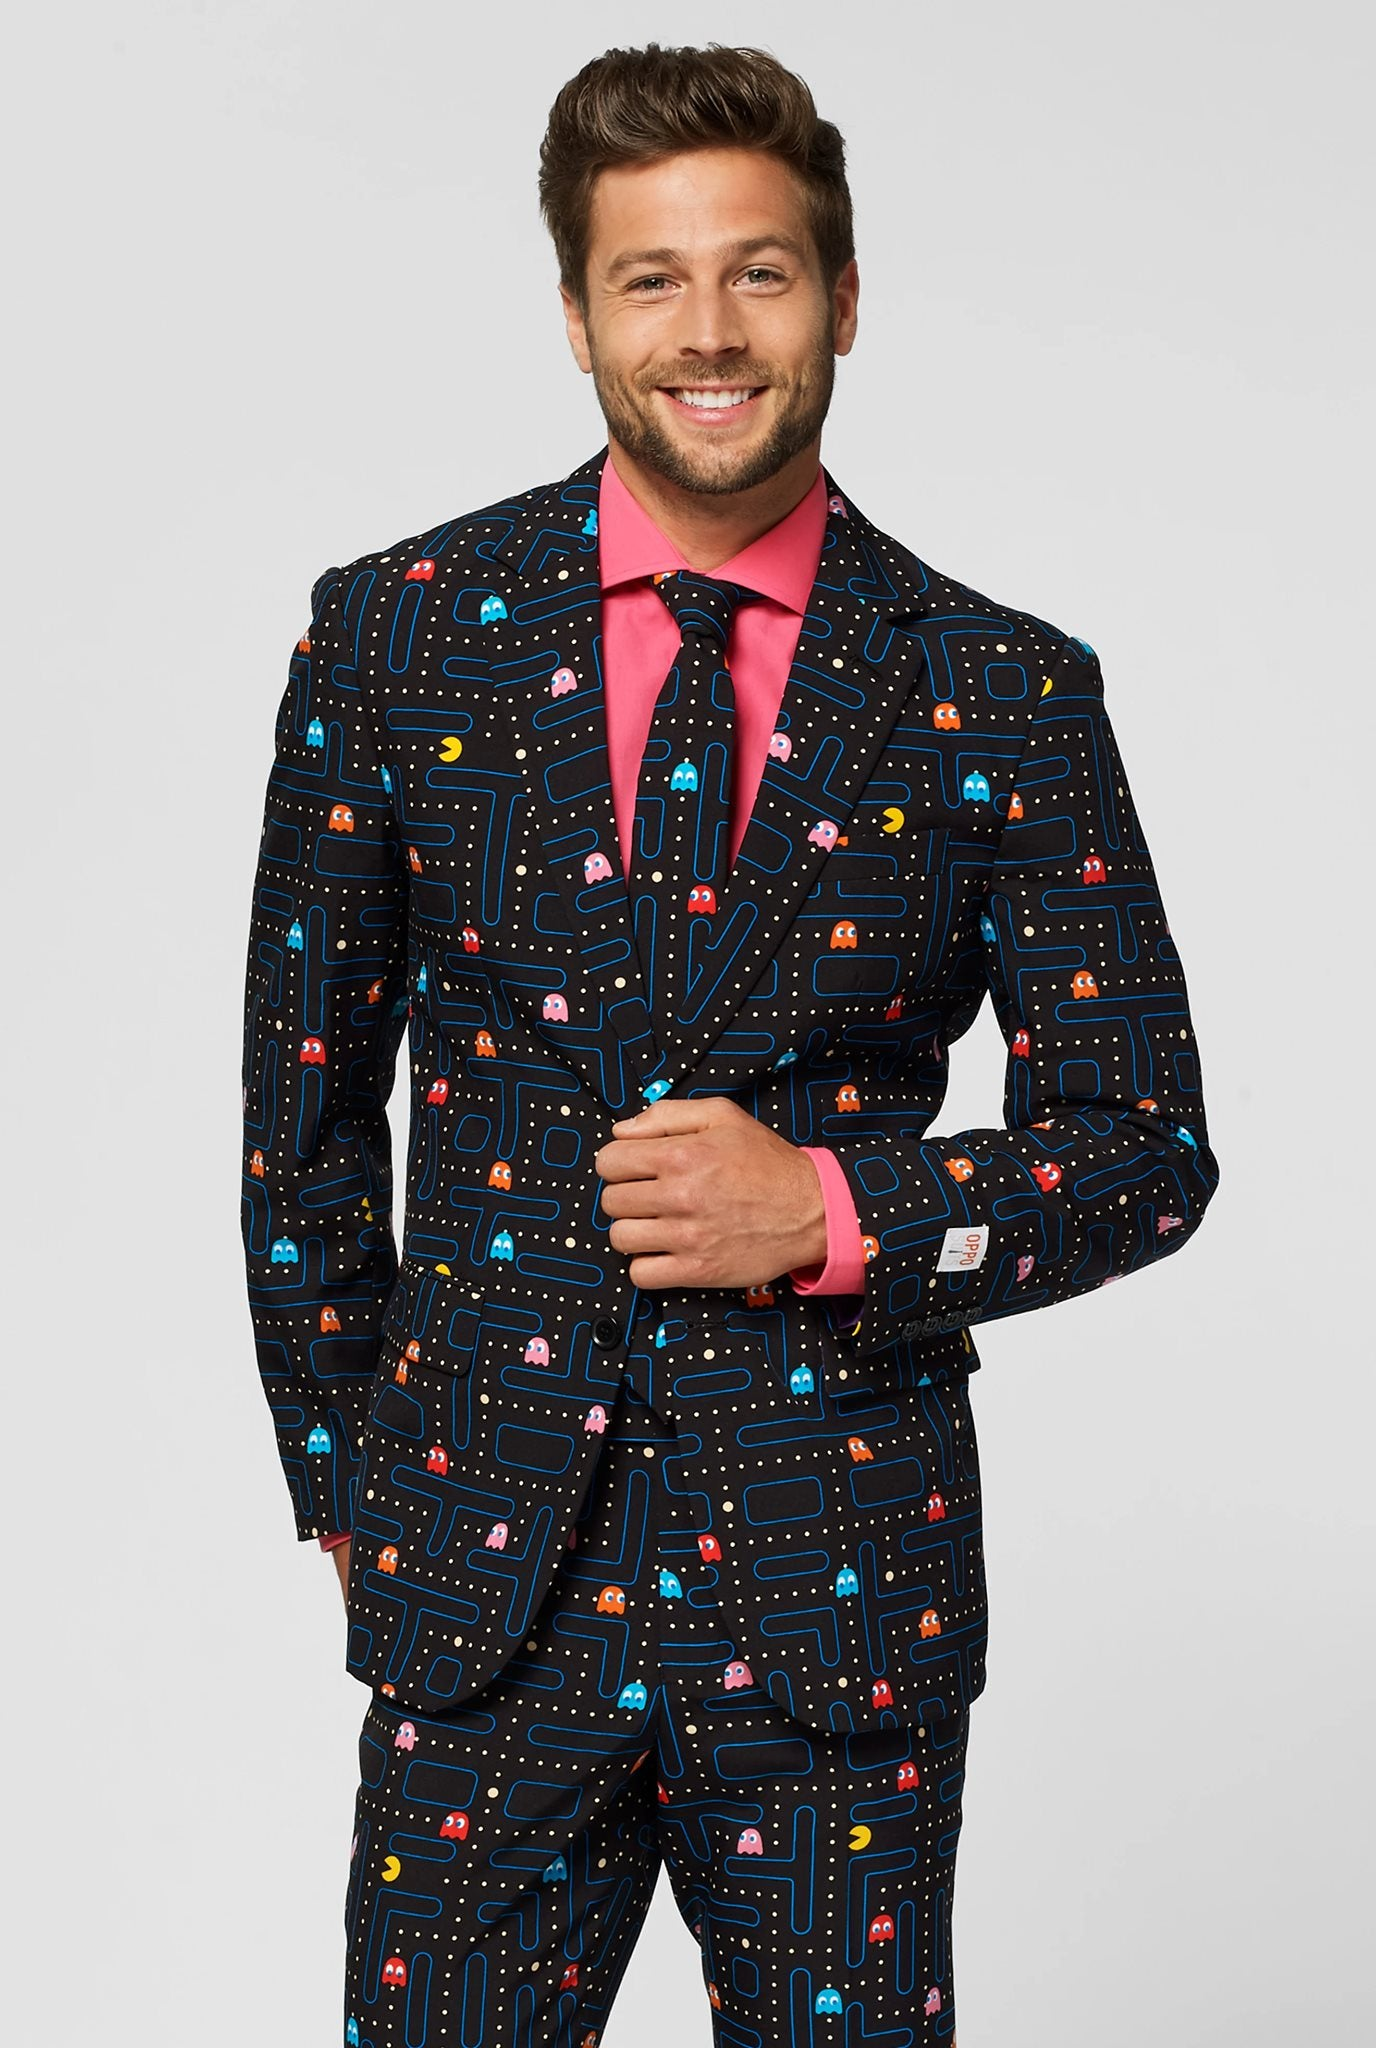 OPPOSUITS PAC MAN